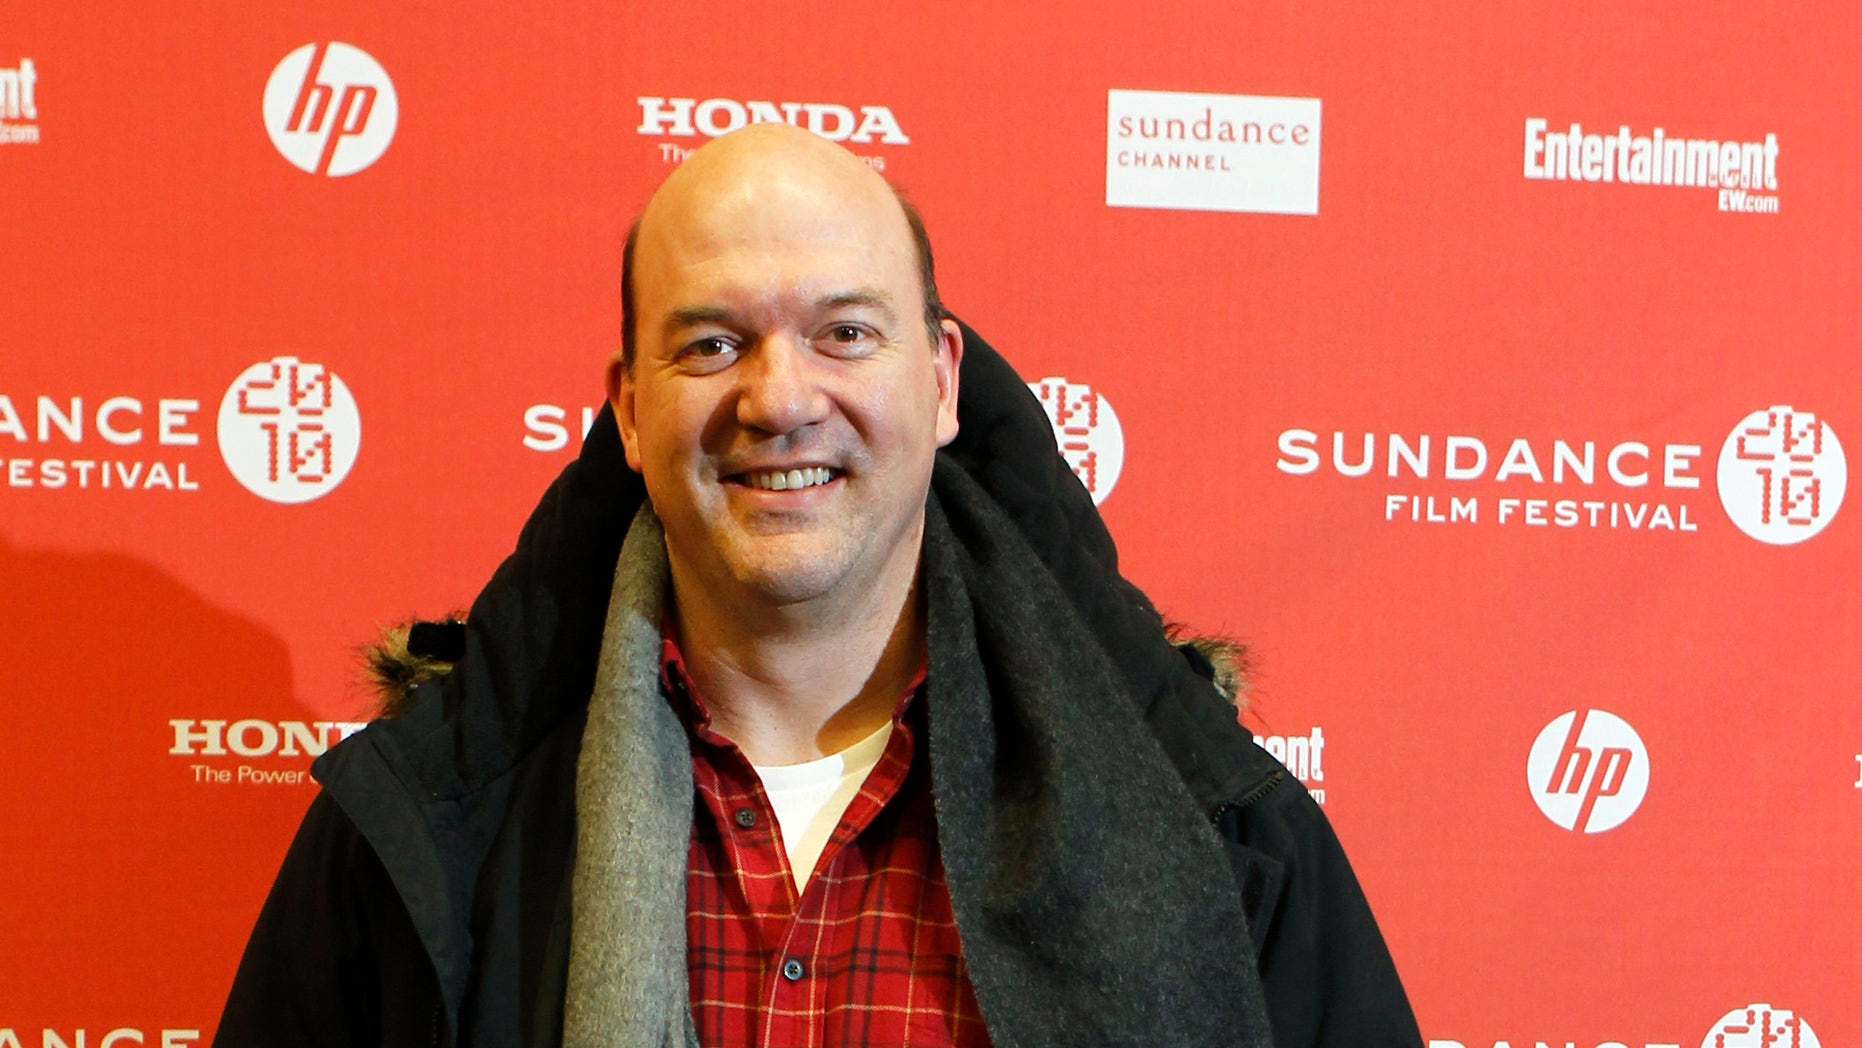 """Actor John Carroll Lynch arrives for the premiere of the film """"Hesher"""" during the 2010 Sundance Film Festival in Park City, Utah January 22, 2010.  REUTERS/Lucas Jackson (UNITED STATES - Tags: ENTERTAINMENT) - RTR29C0Z"""